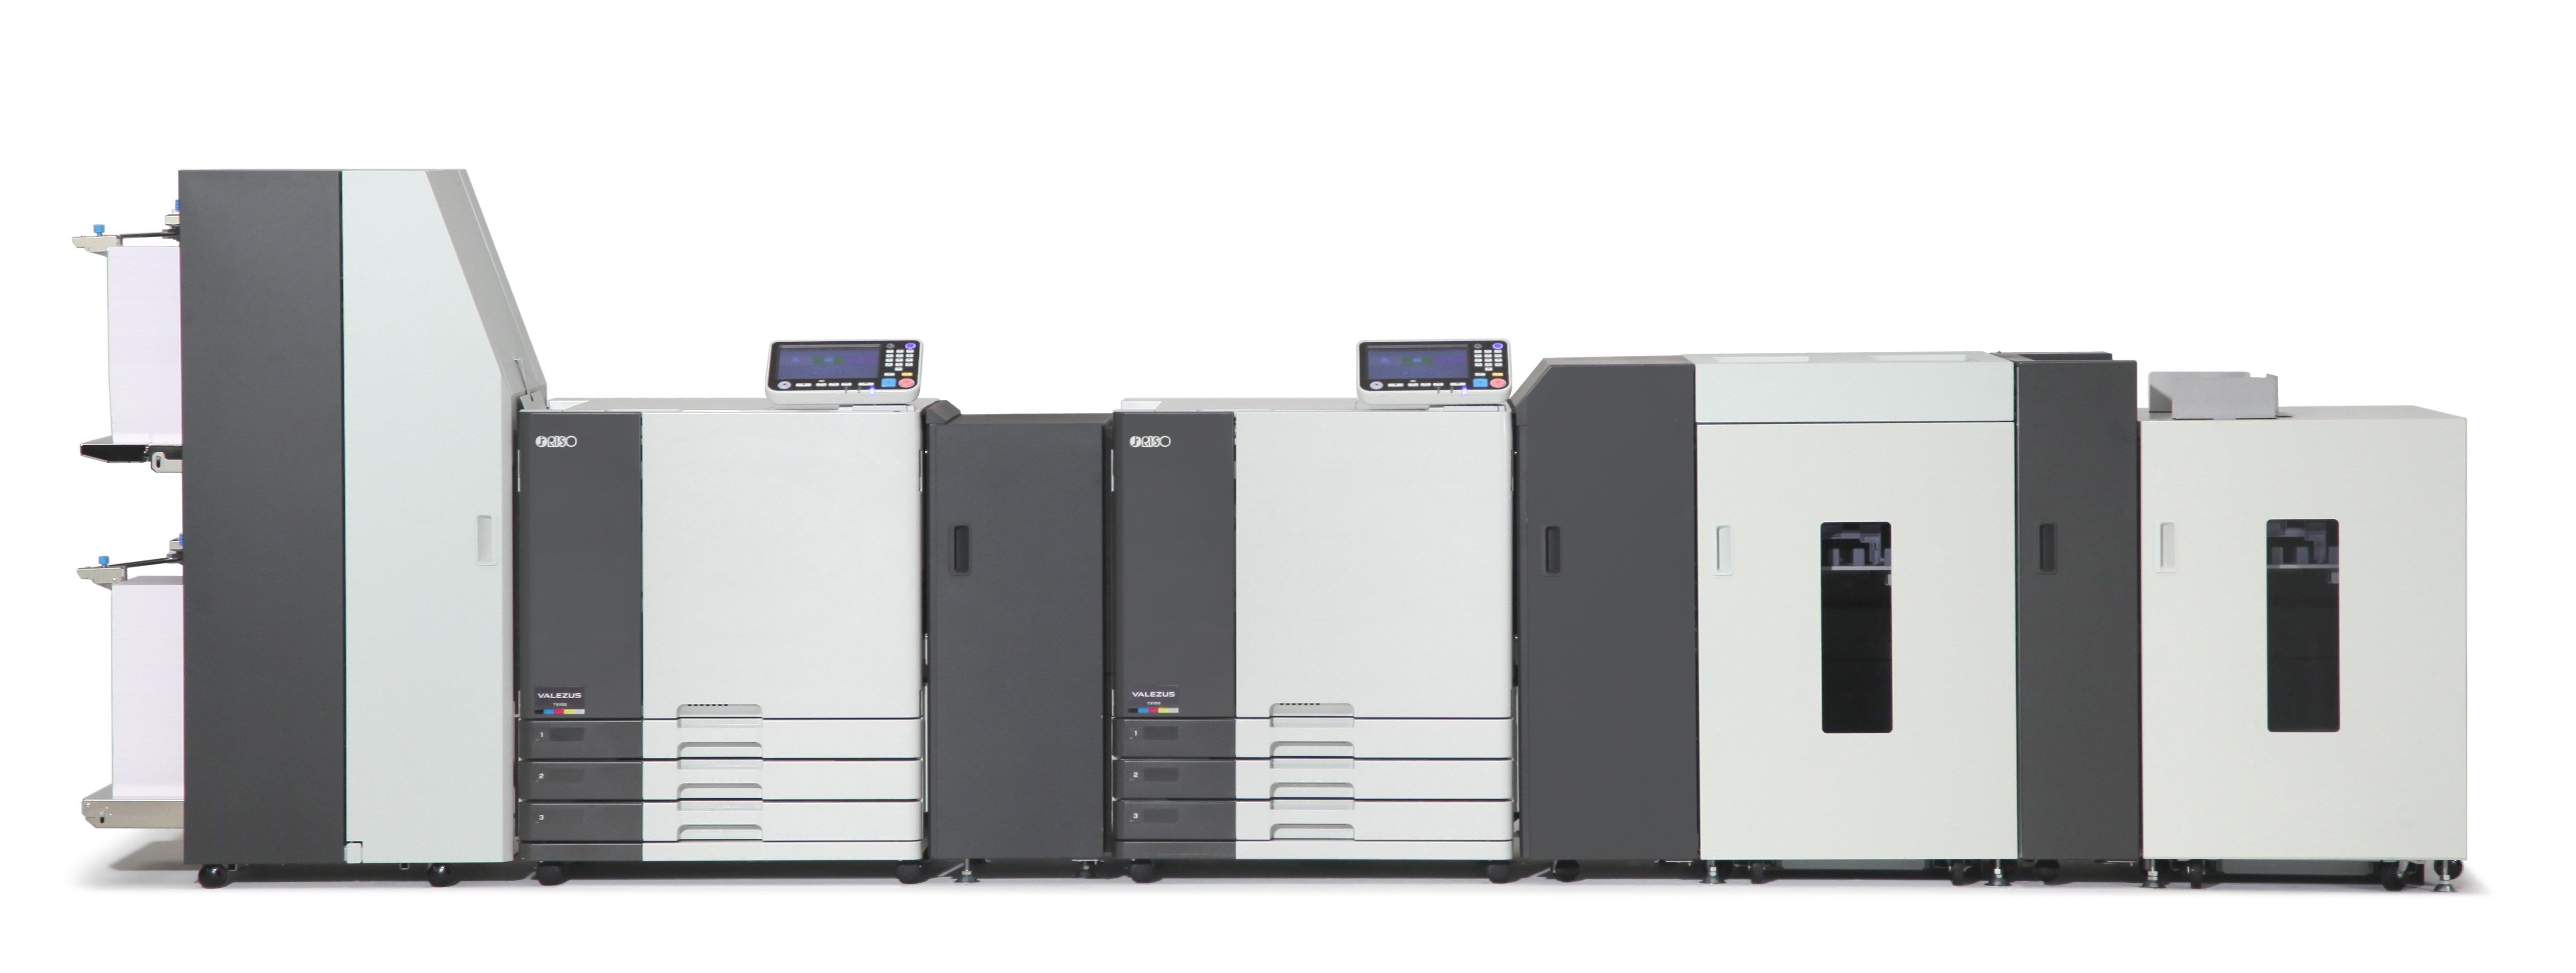 The Riso Valezus T2100 Is A Sheetfed Production Inkjet Device